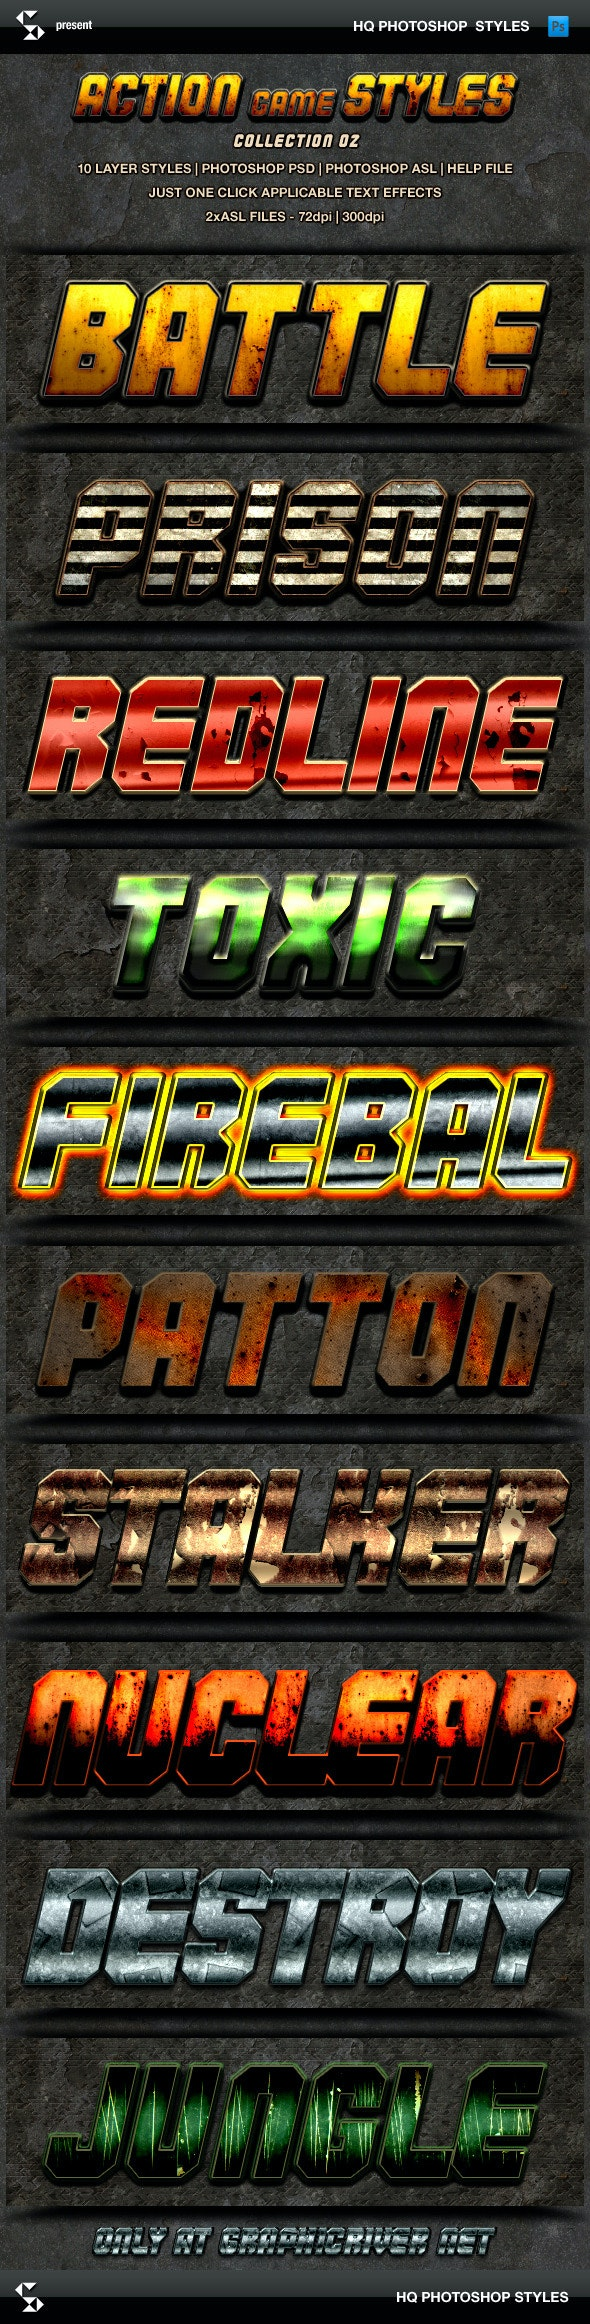 Action Game Styles - Collection 2 - Text Effects Styles